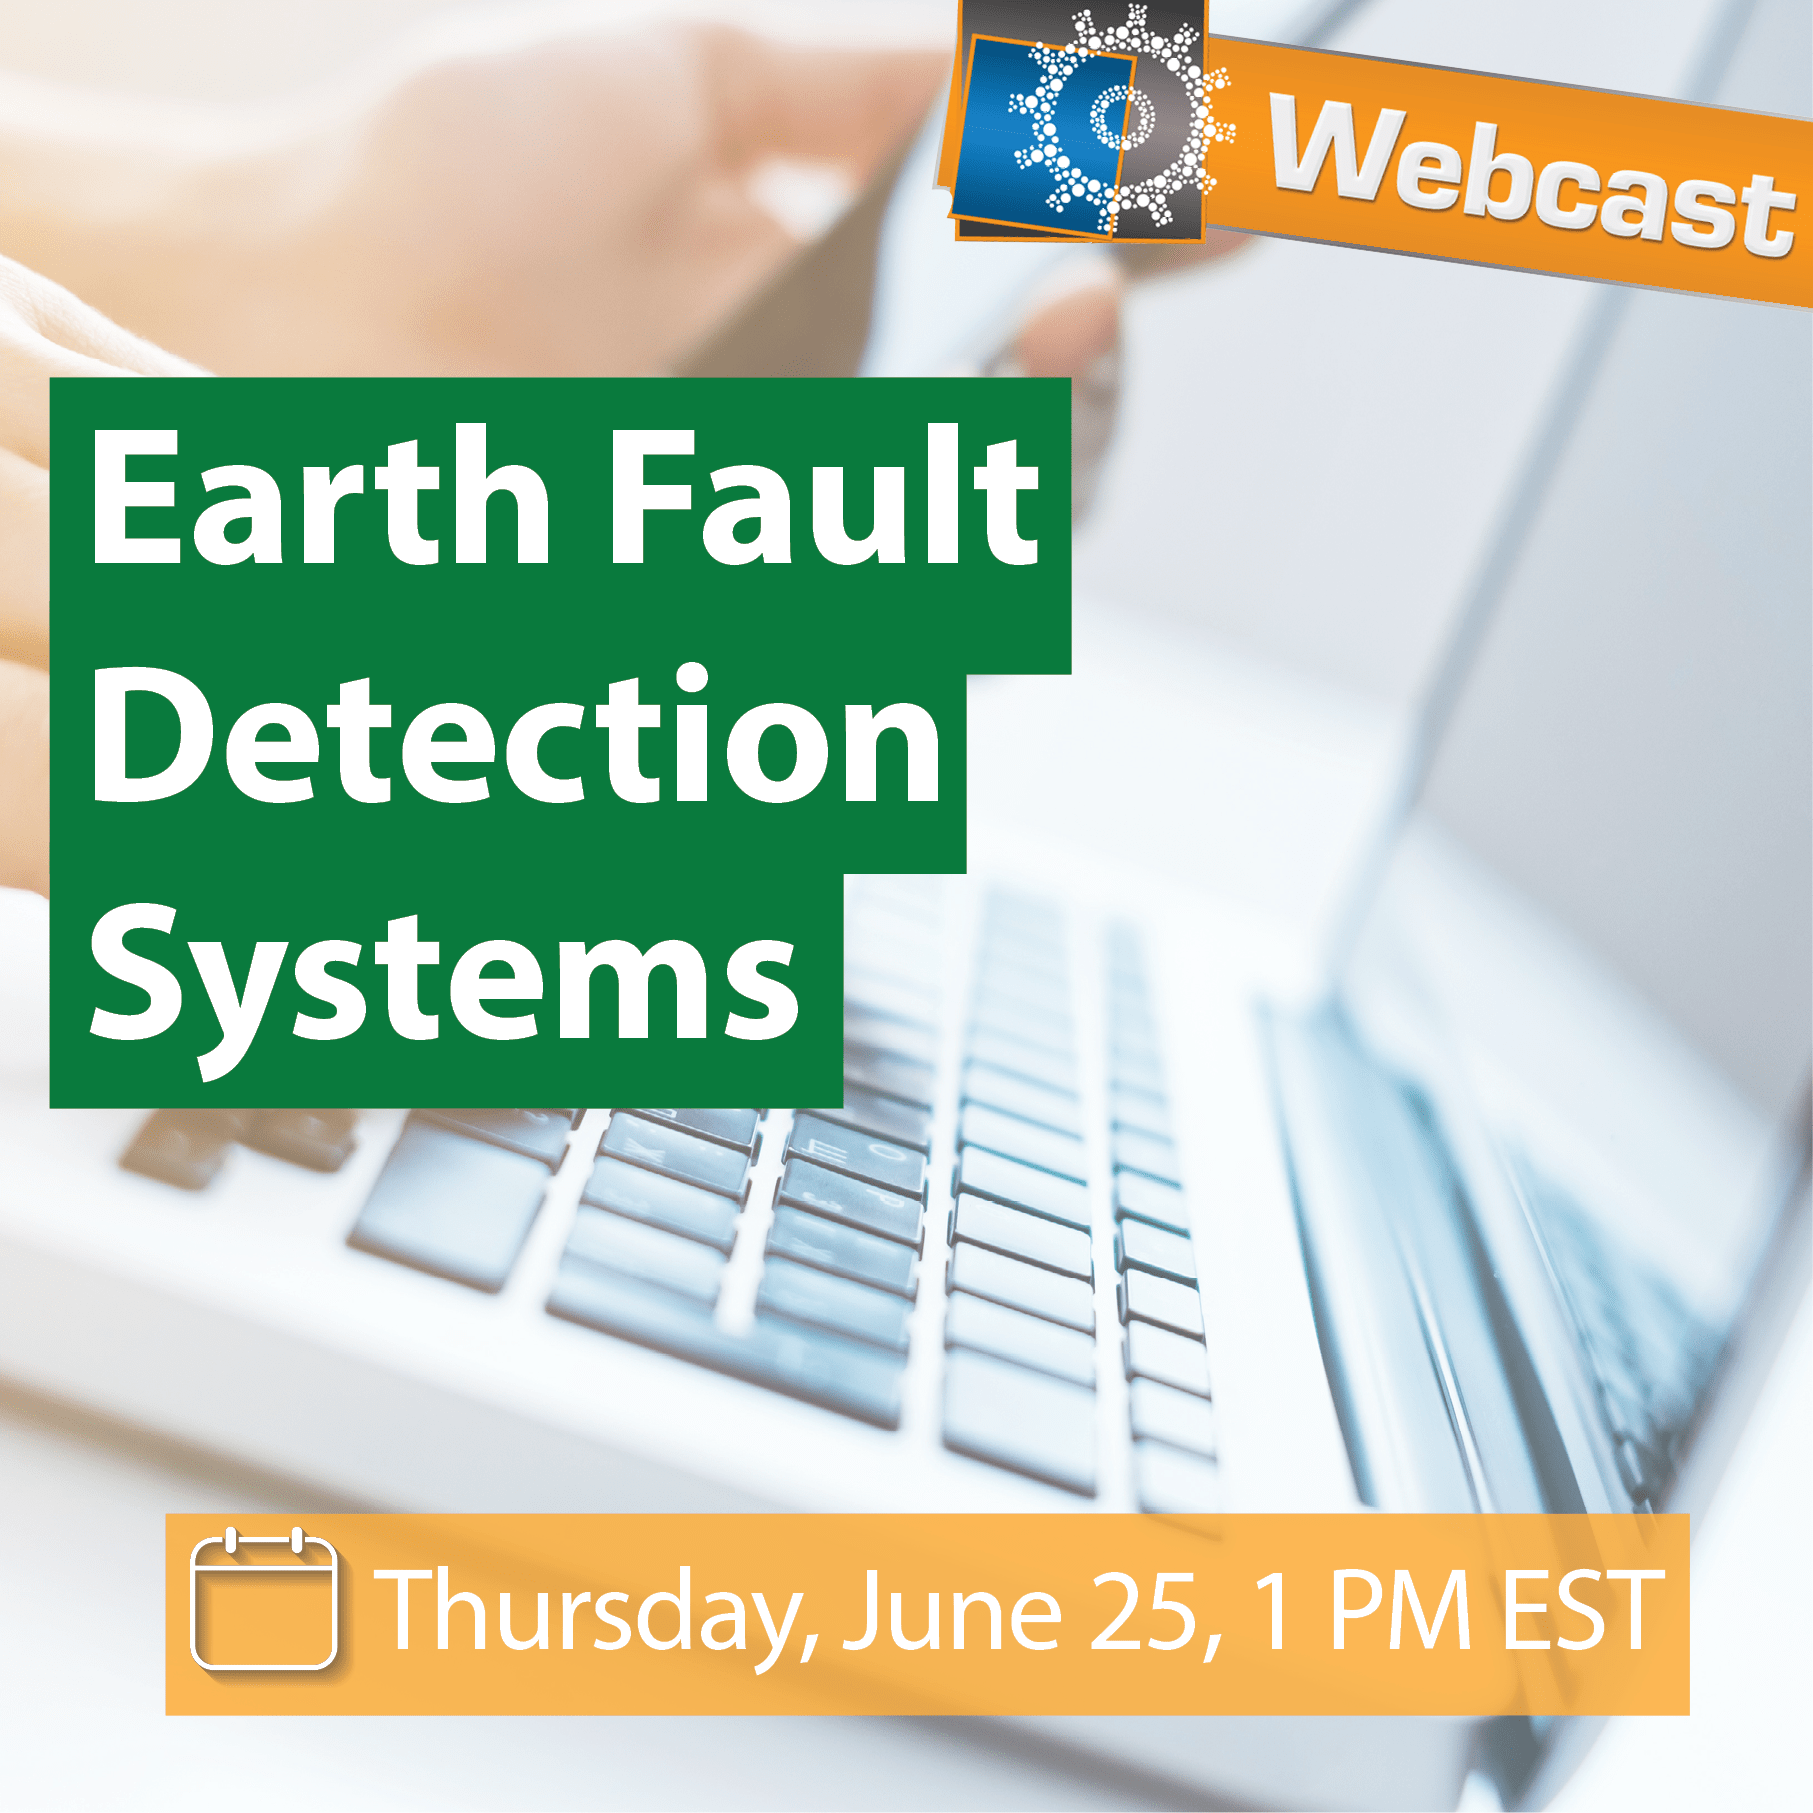 Webcast: Earth Fault Detection Systems